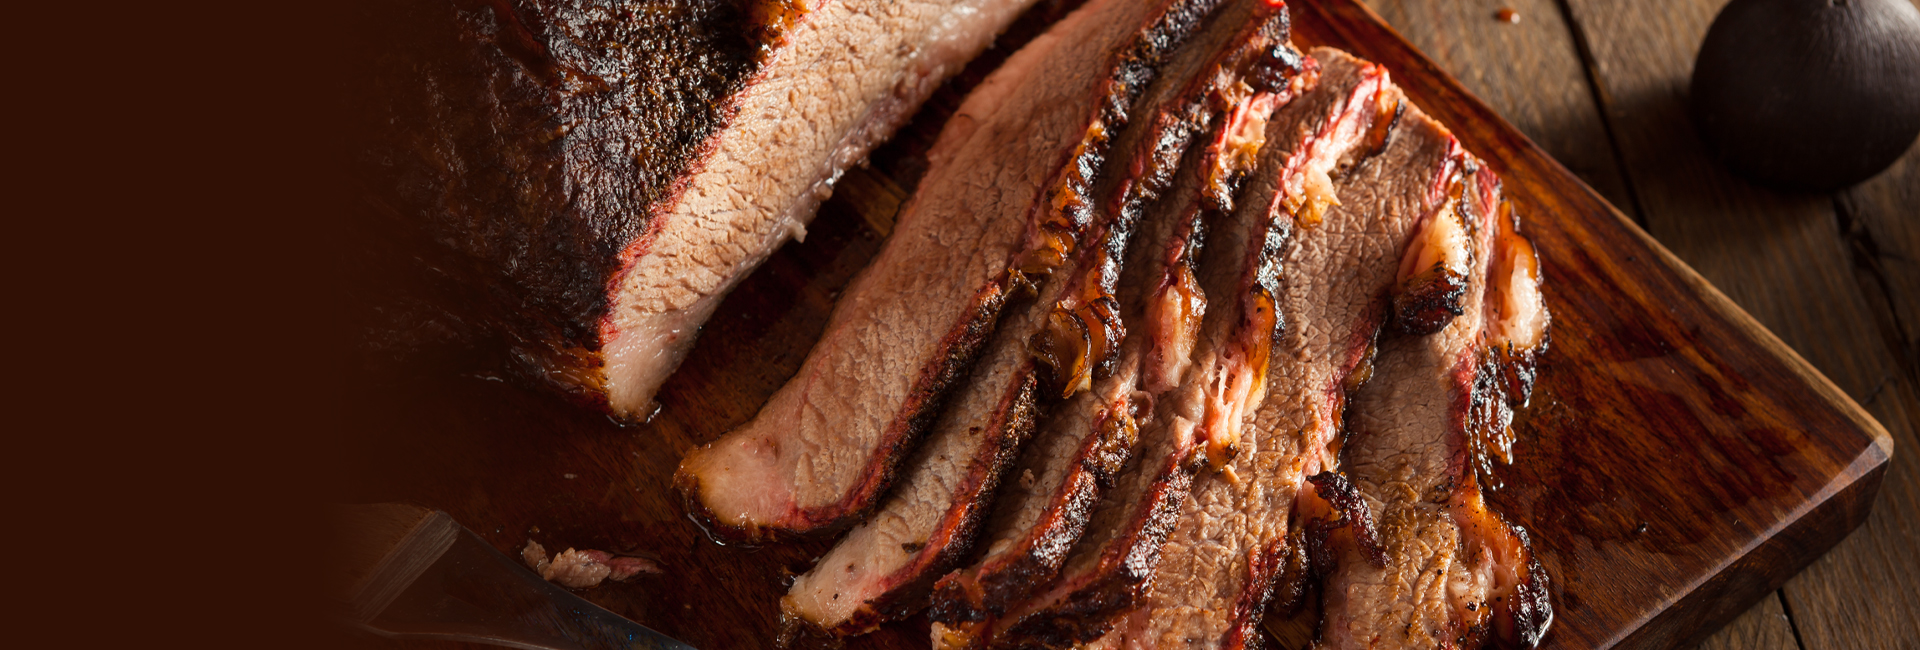 How to Make 4 Rivers Smoked Brisket at Home